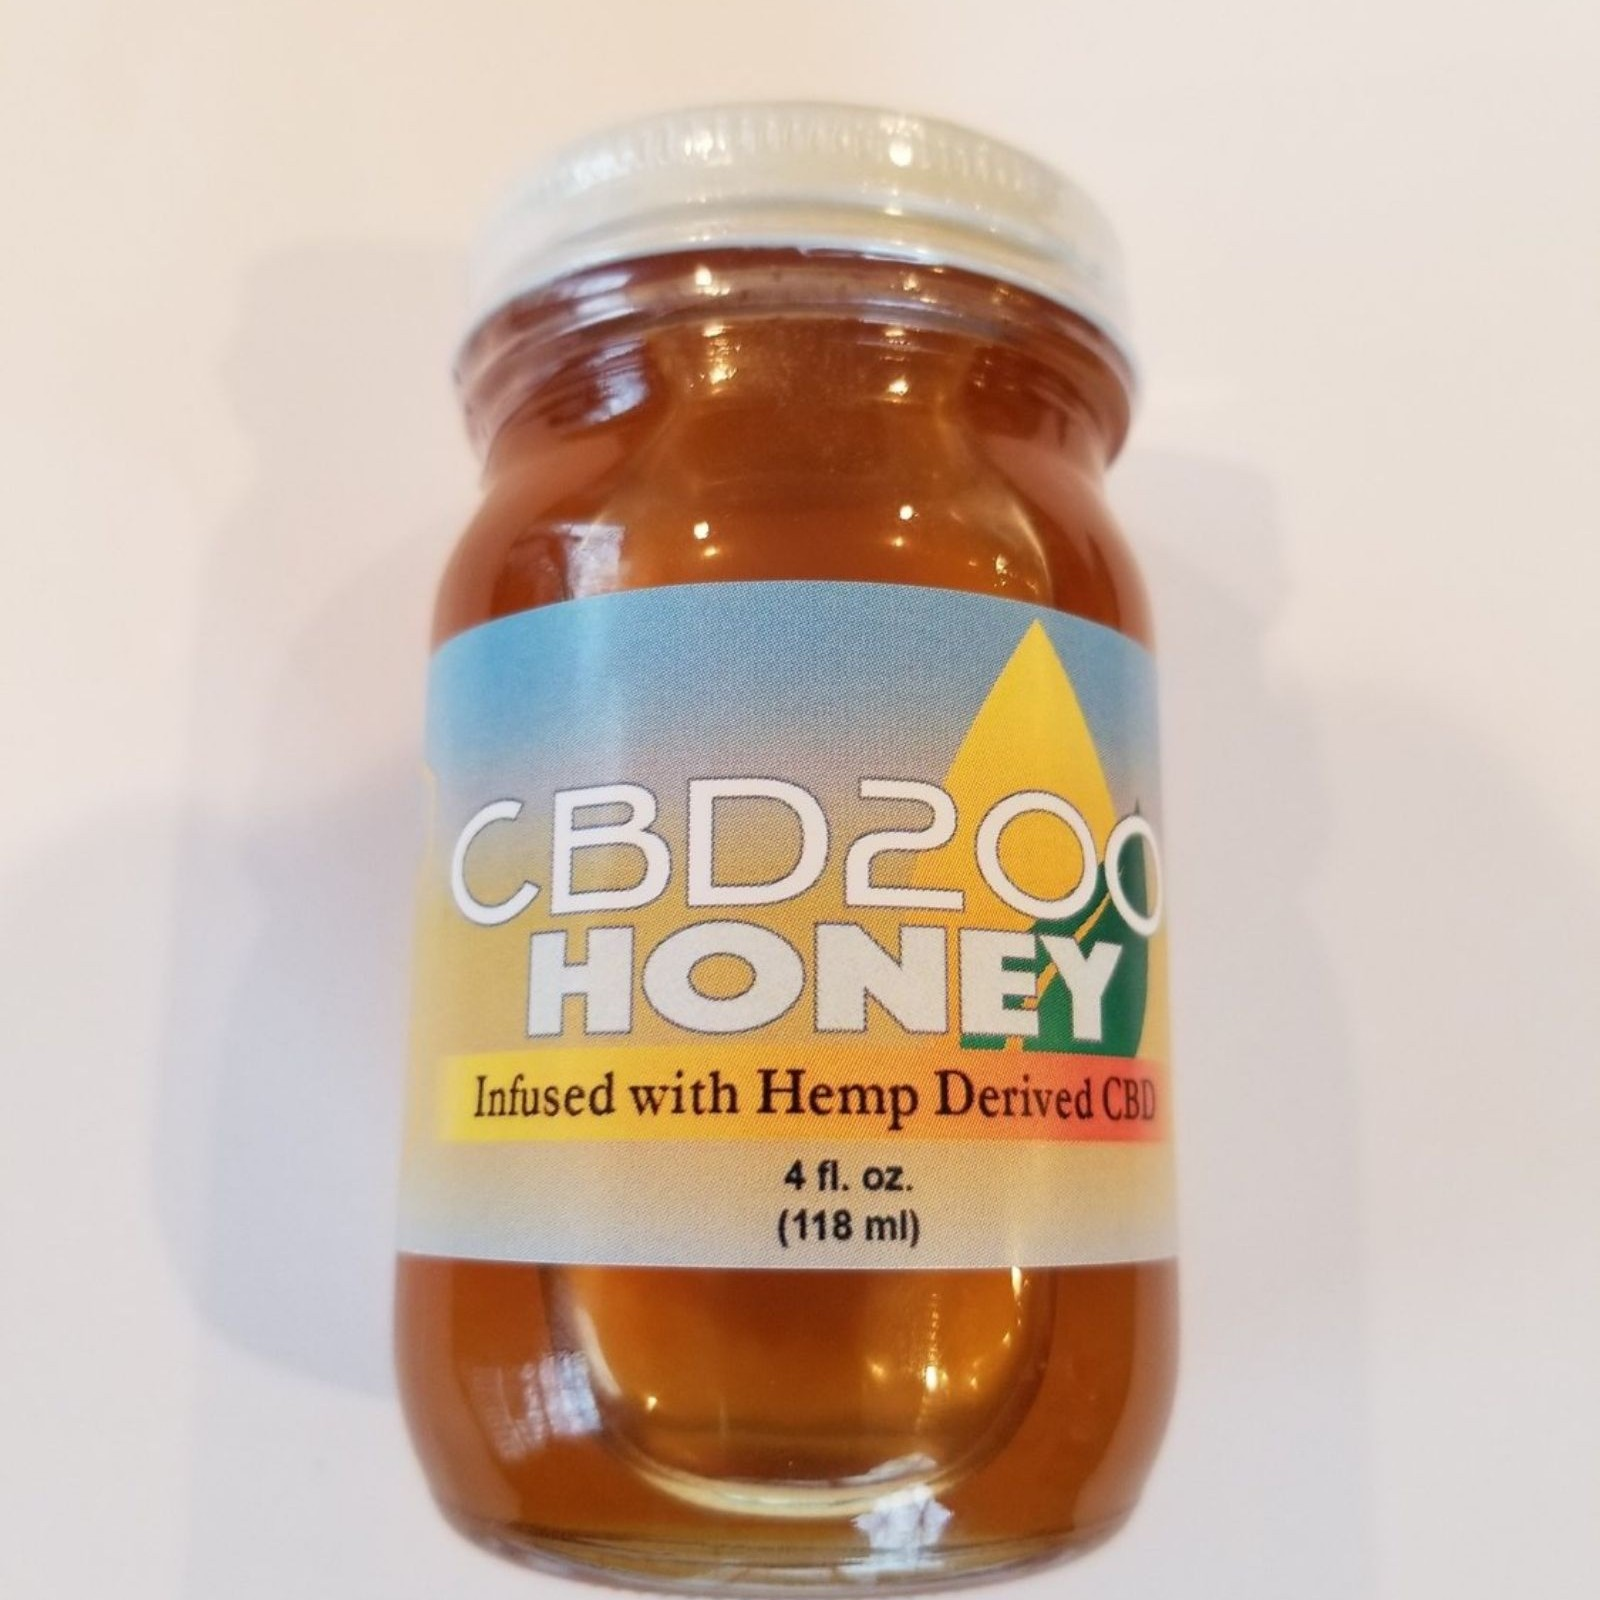 US HempCare's  goal is to help people in their health & wellness by providing a safe, legal, non-addictive, non-psychoactive alternative to opioids and other over-prescribed drugs. Their CBD is extracted from organically-grown hemp and they grow their own hemp organically in the US (ME, VT, MA). They test their plants and products at every phase of production (from seed to bottle) for both cannabinoid content and contaminants.